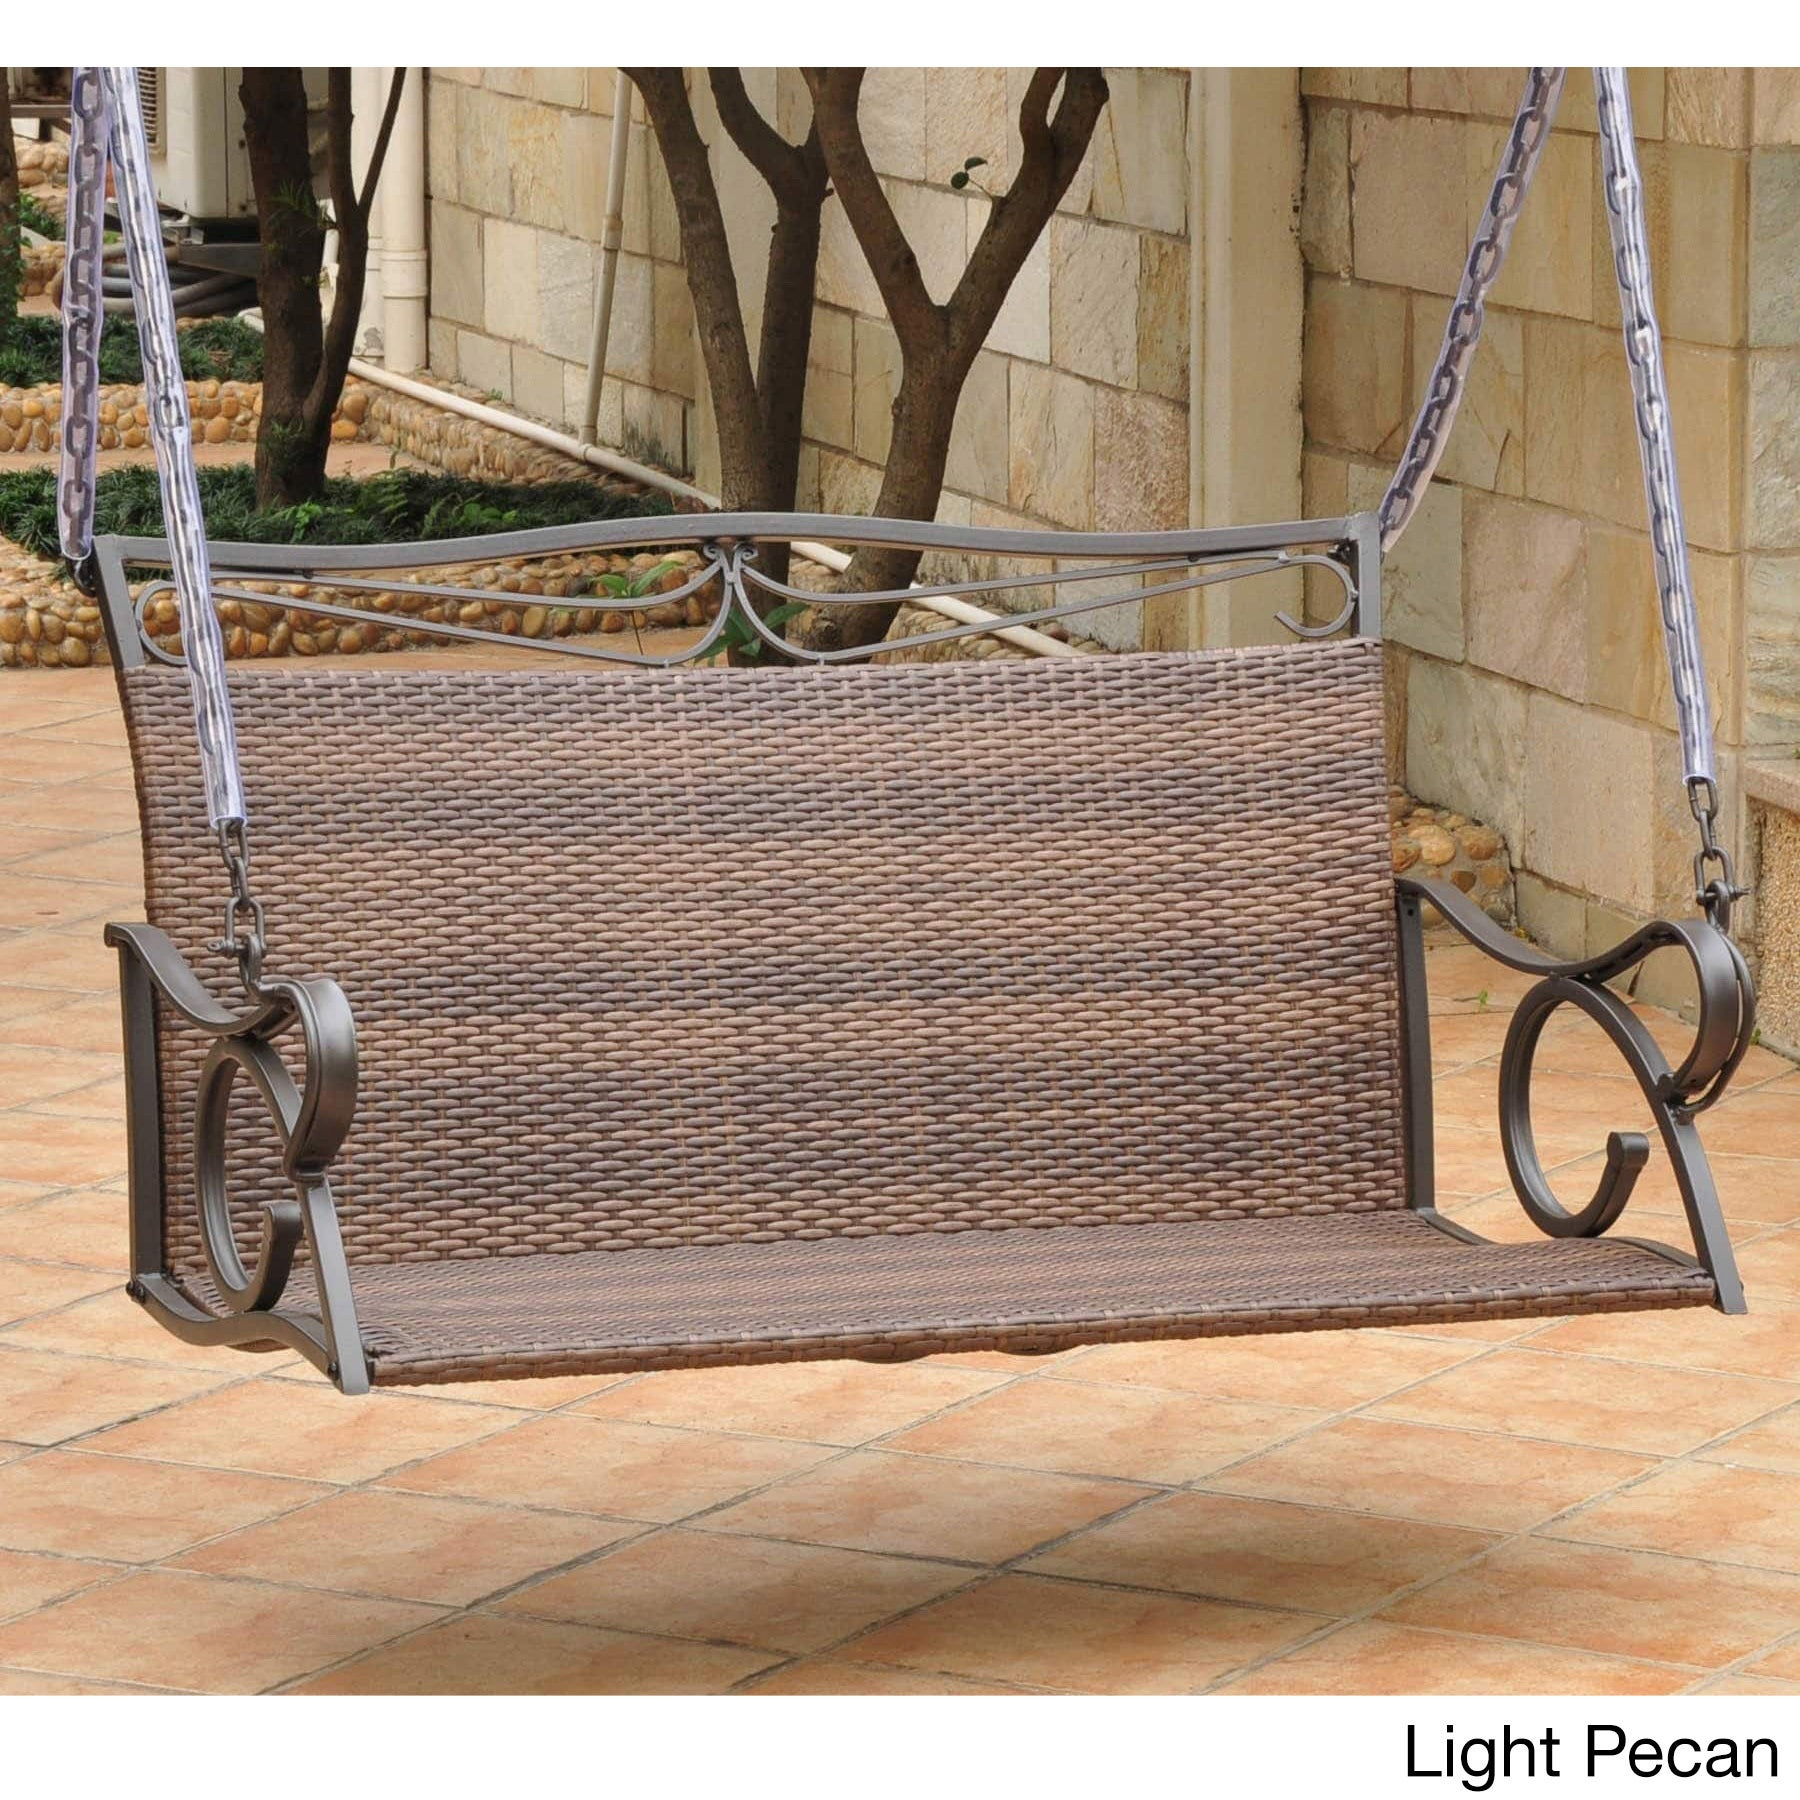 dark kh swing retail resin htm seat with p porch price brown cushion wicker khaki modern